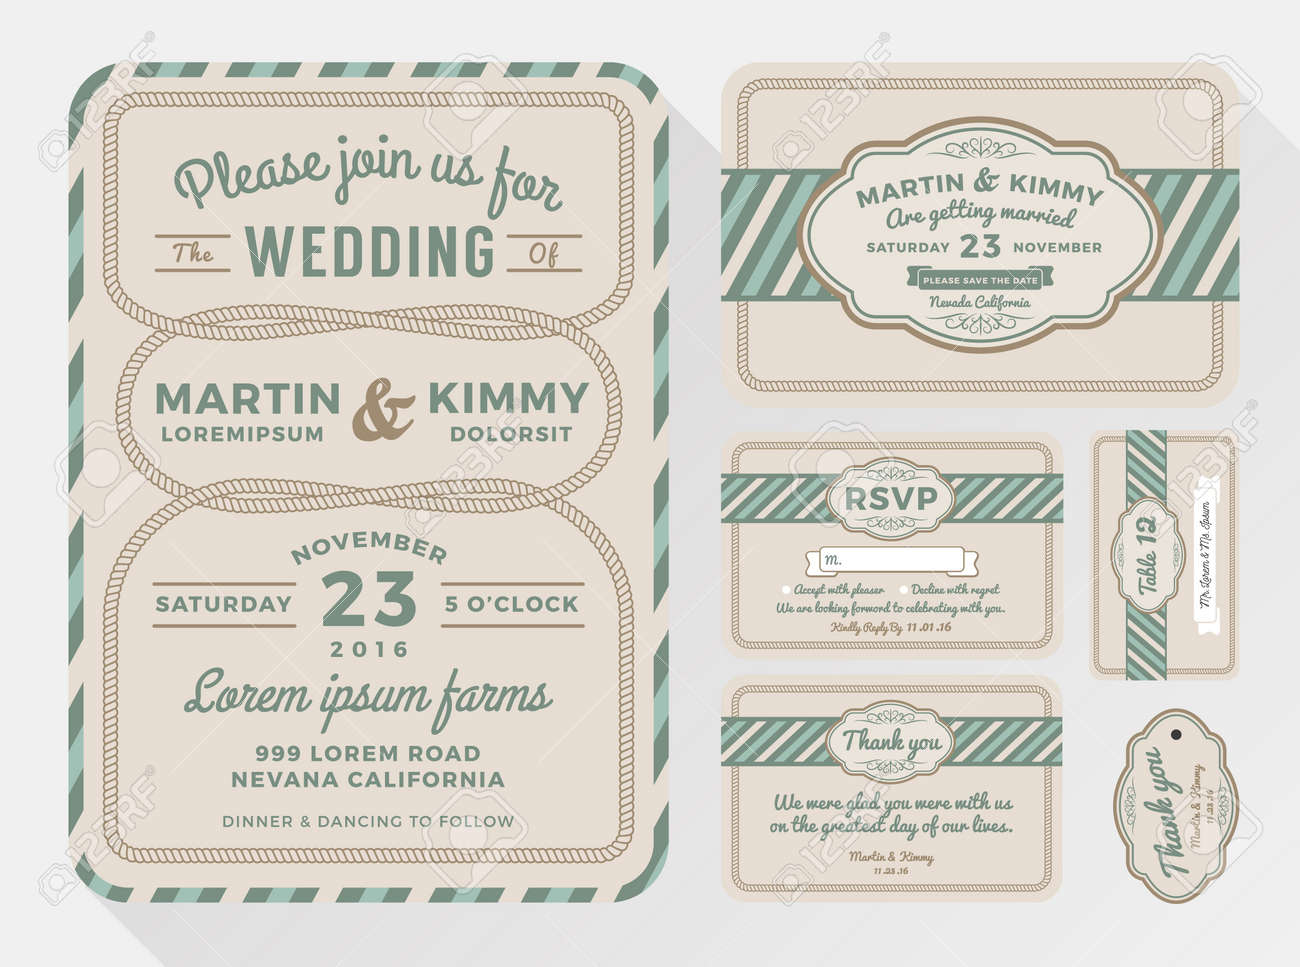 Wedding Invitation Sets For Your Lovely And Friendly Celebration